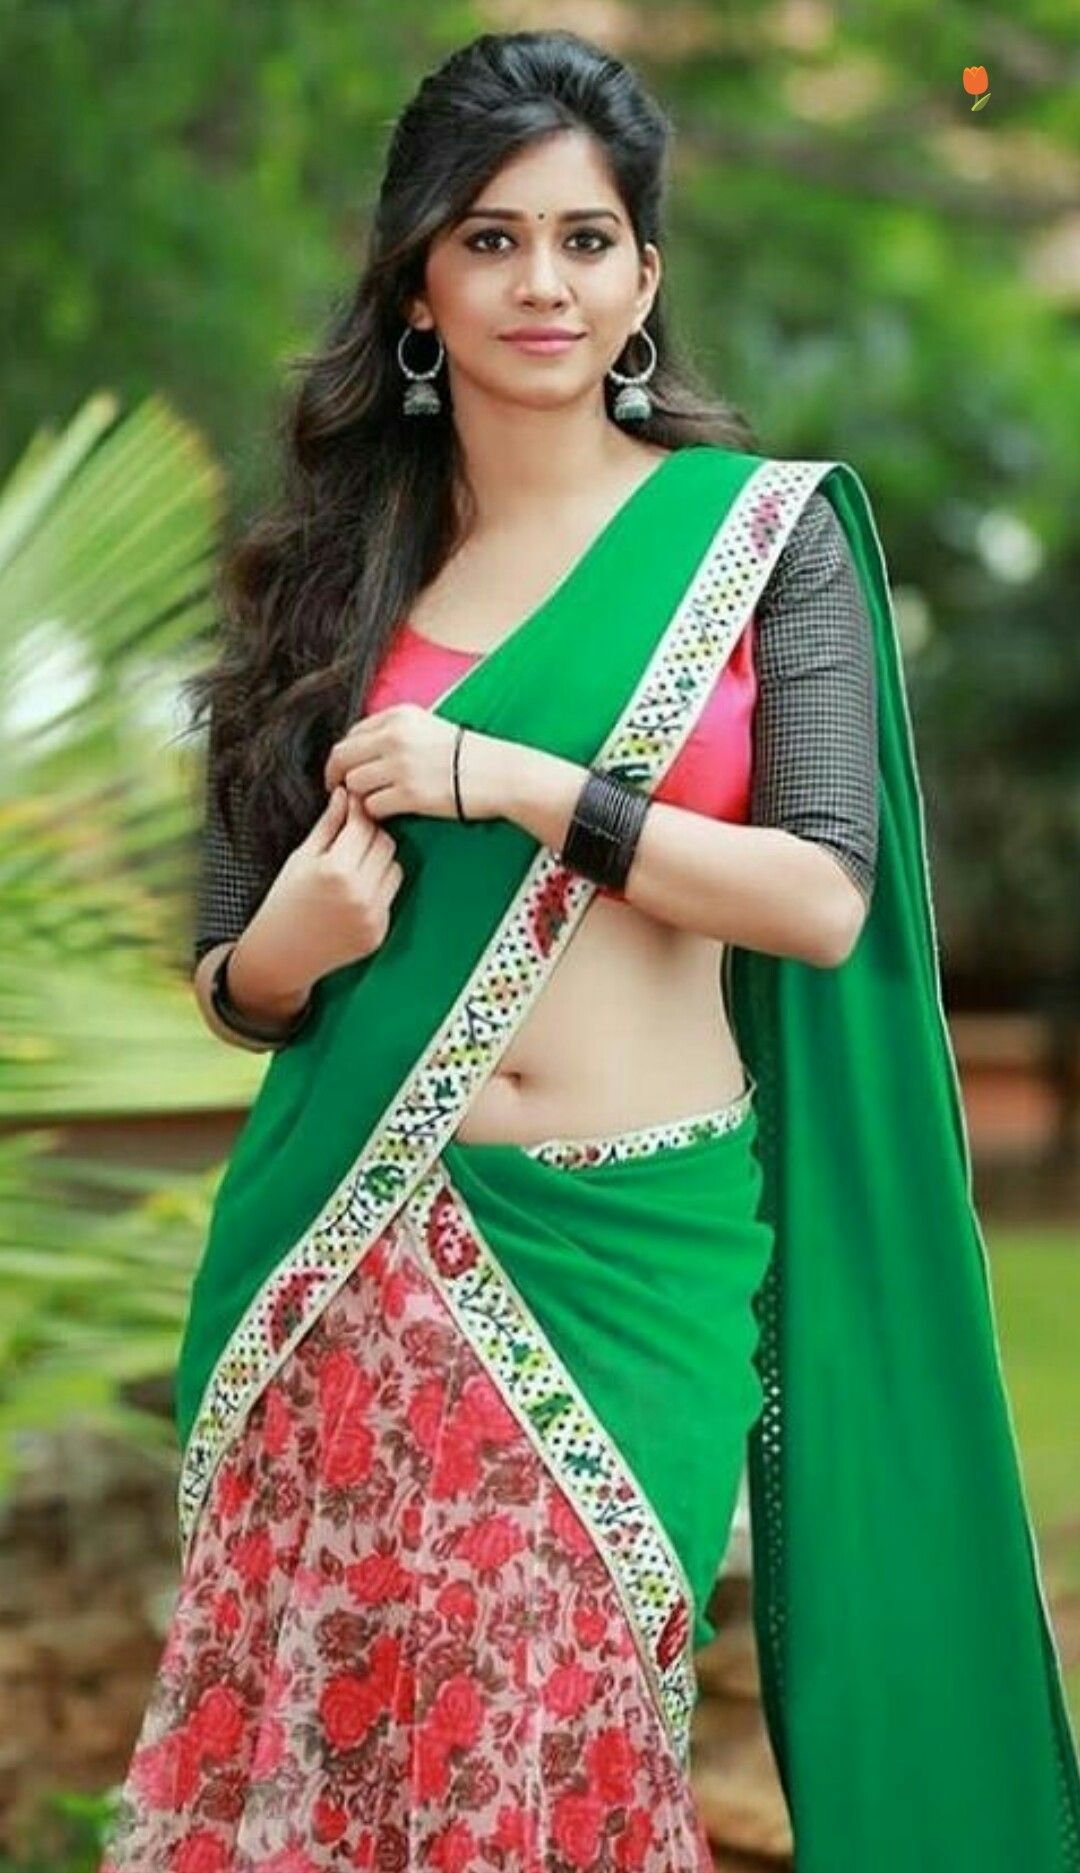 hot girl indian pin by mohan babu on mallu t navel saree and india 2322